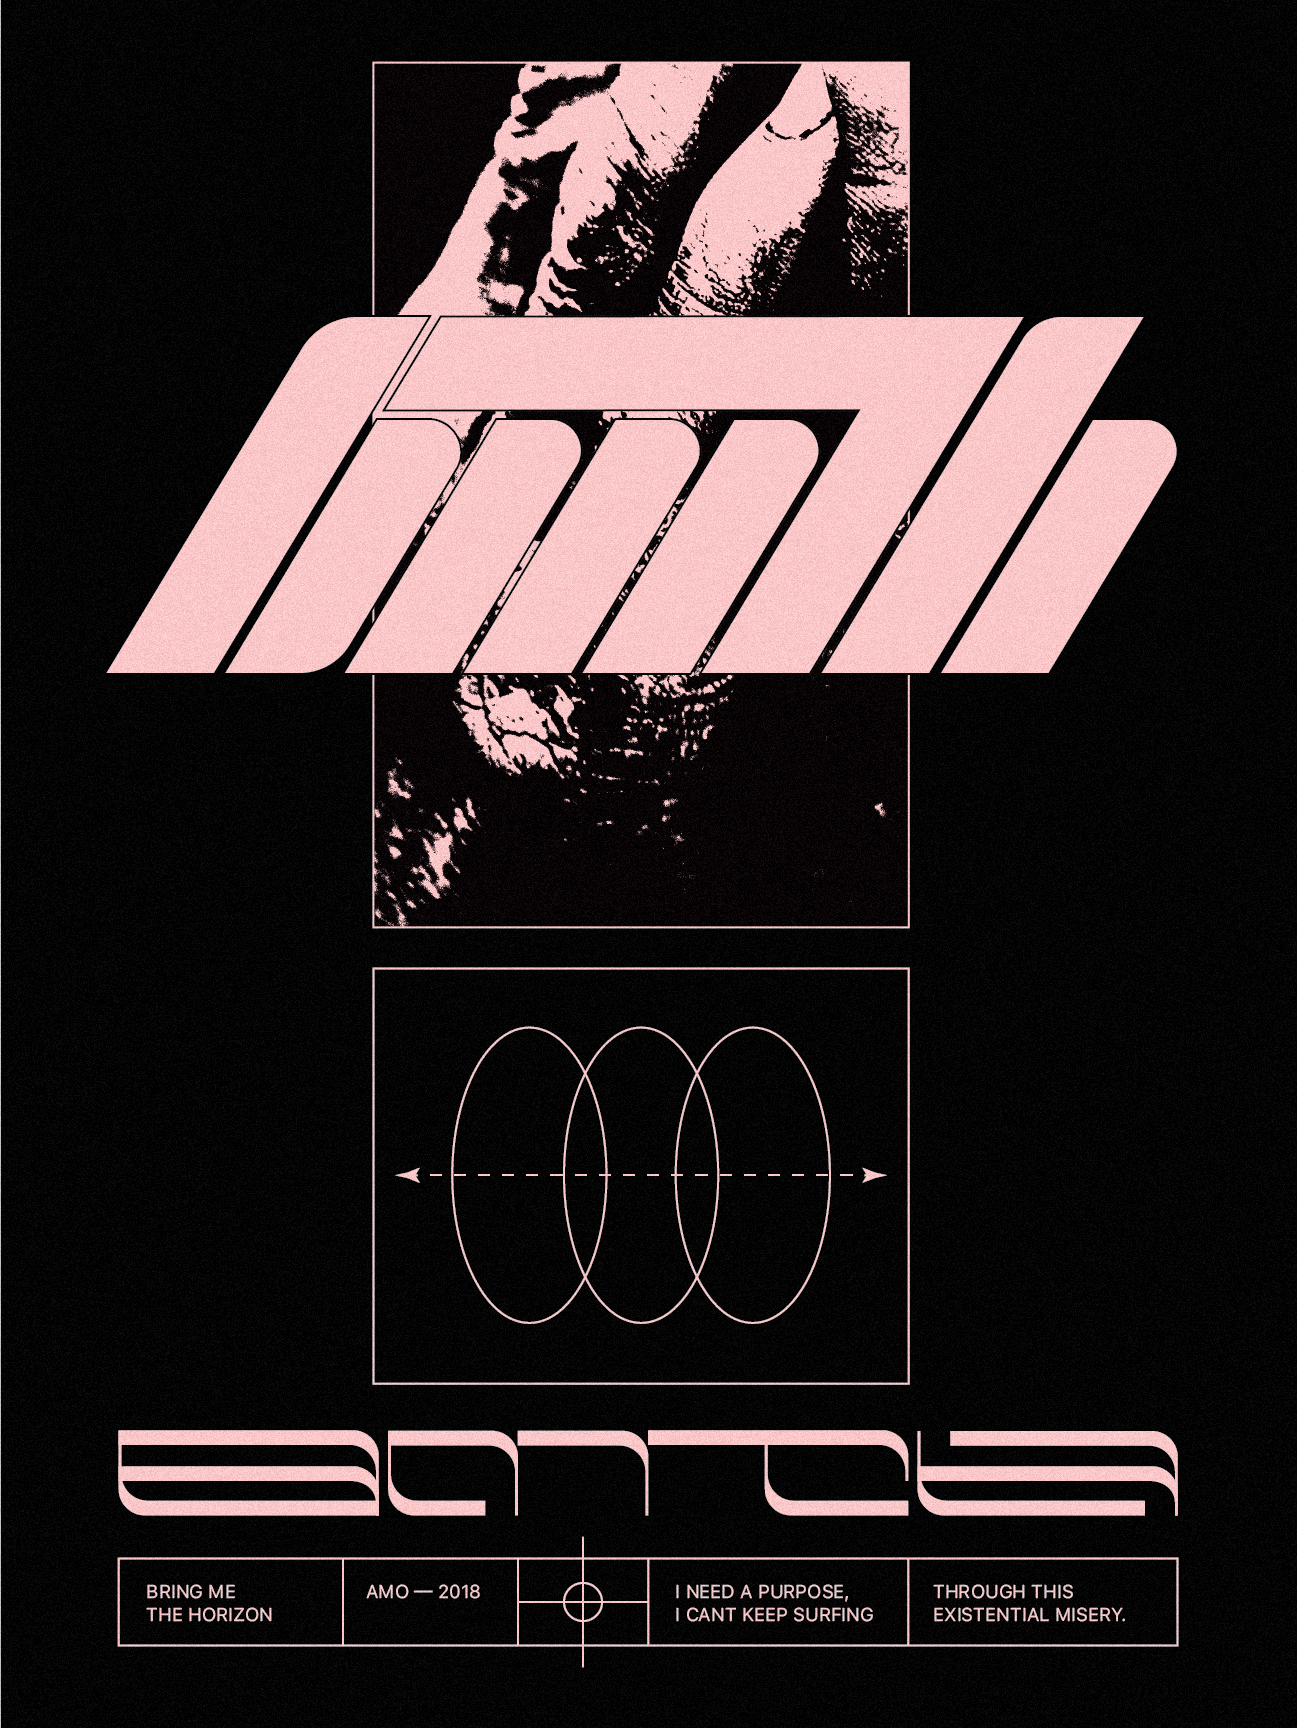 bmth-merch-concept2.png